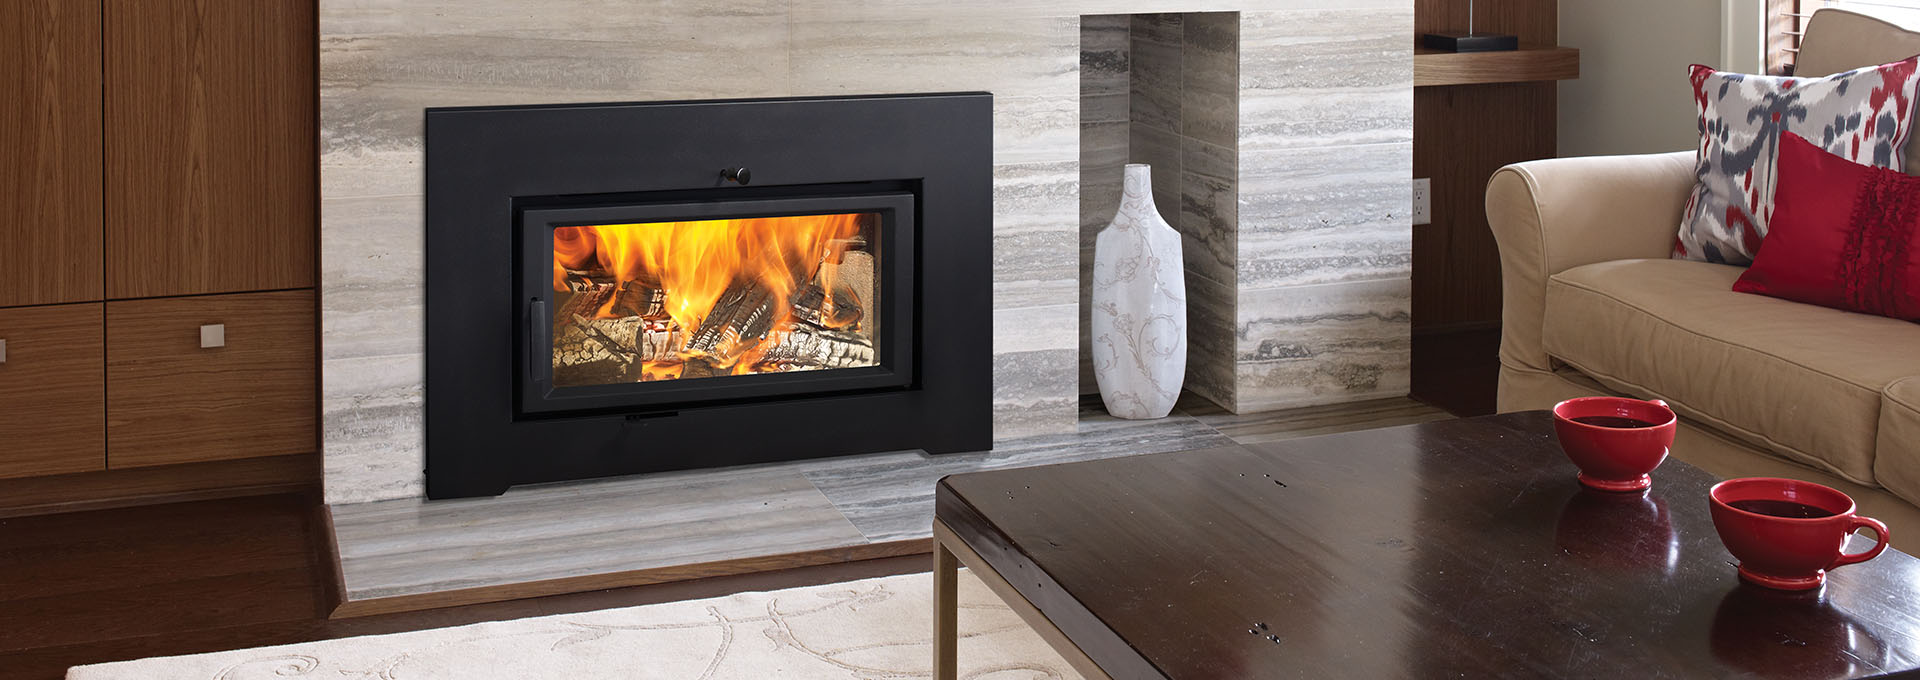 Great Regency Fireplace Products